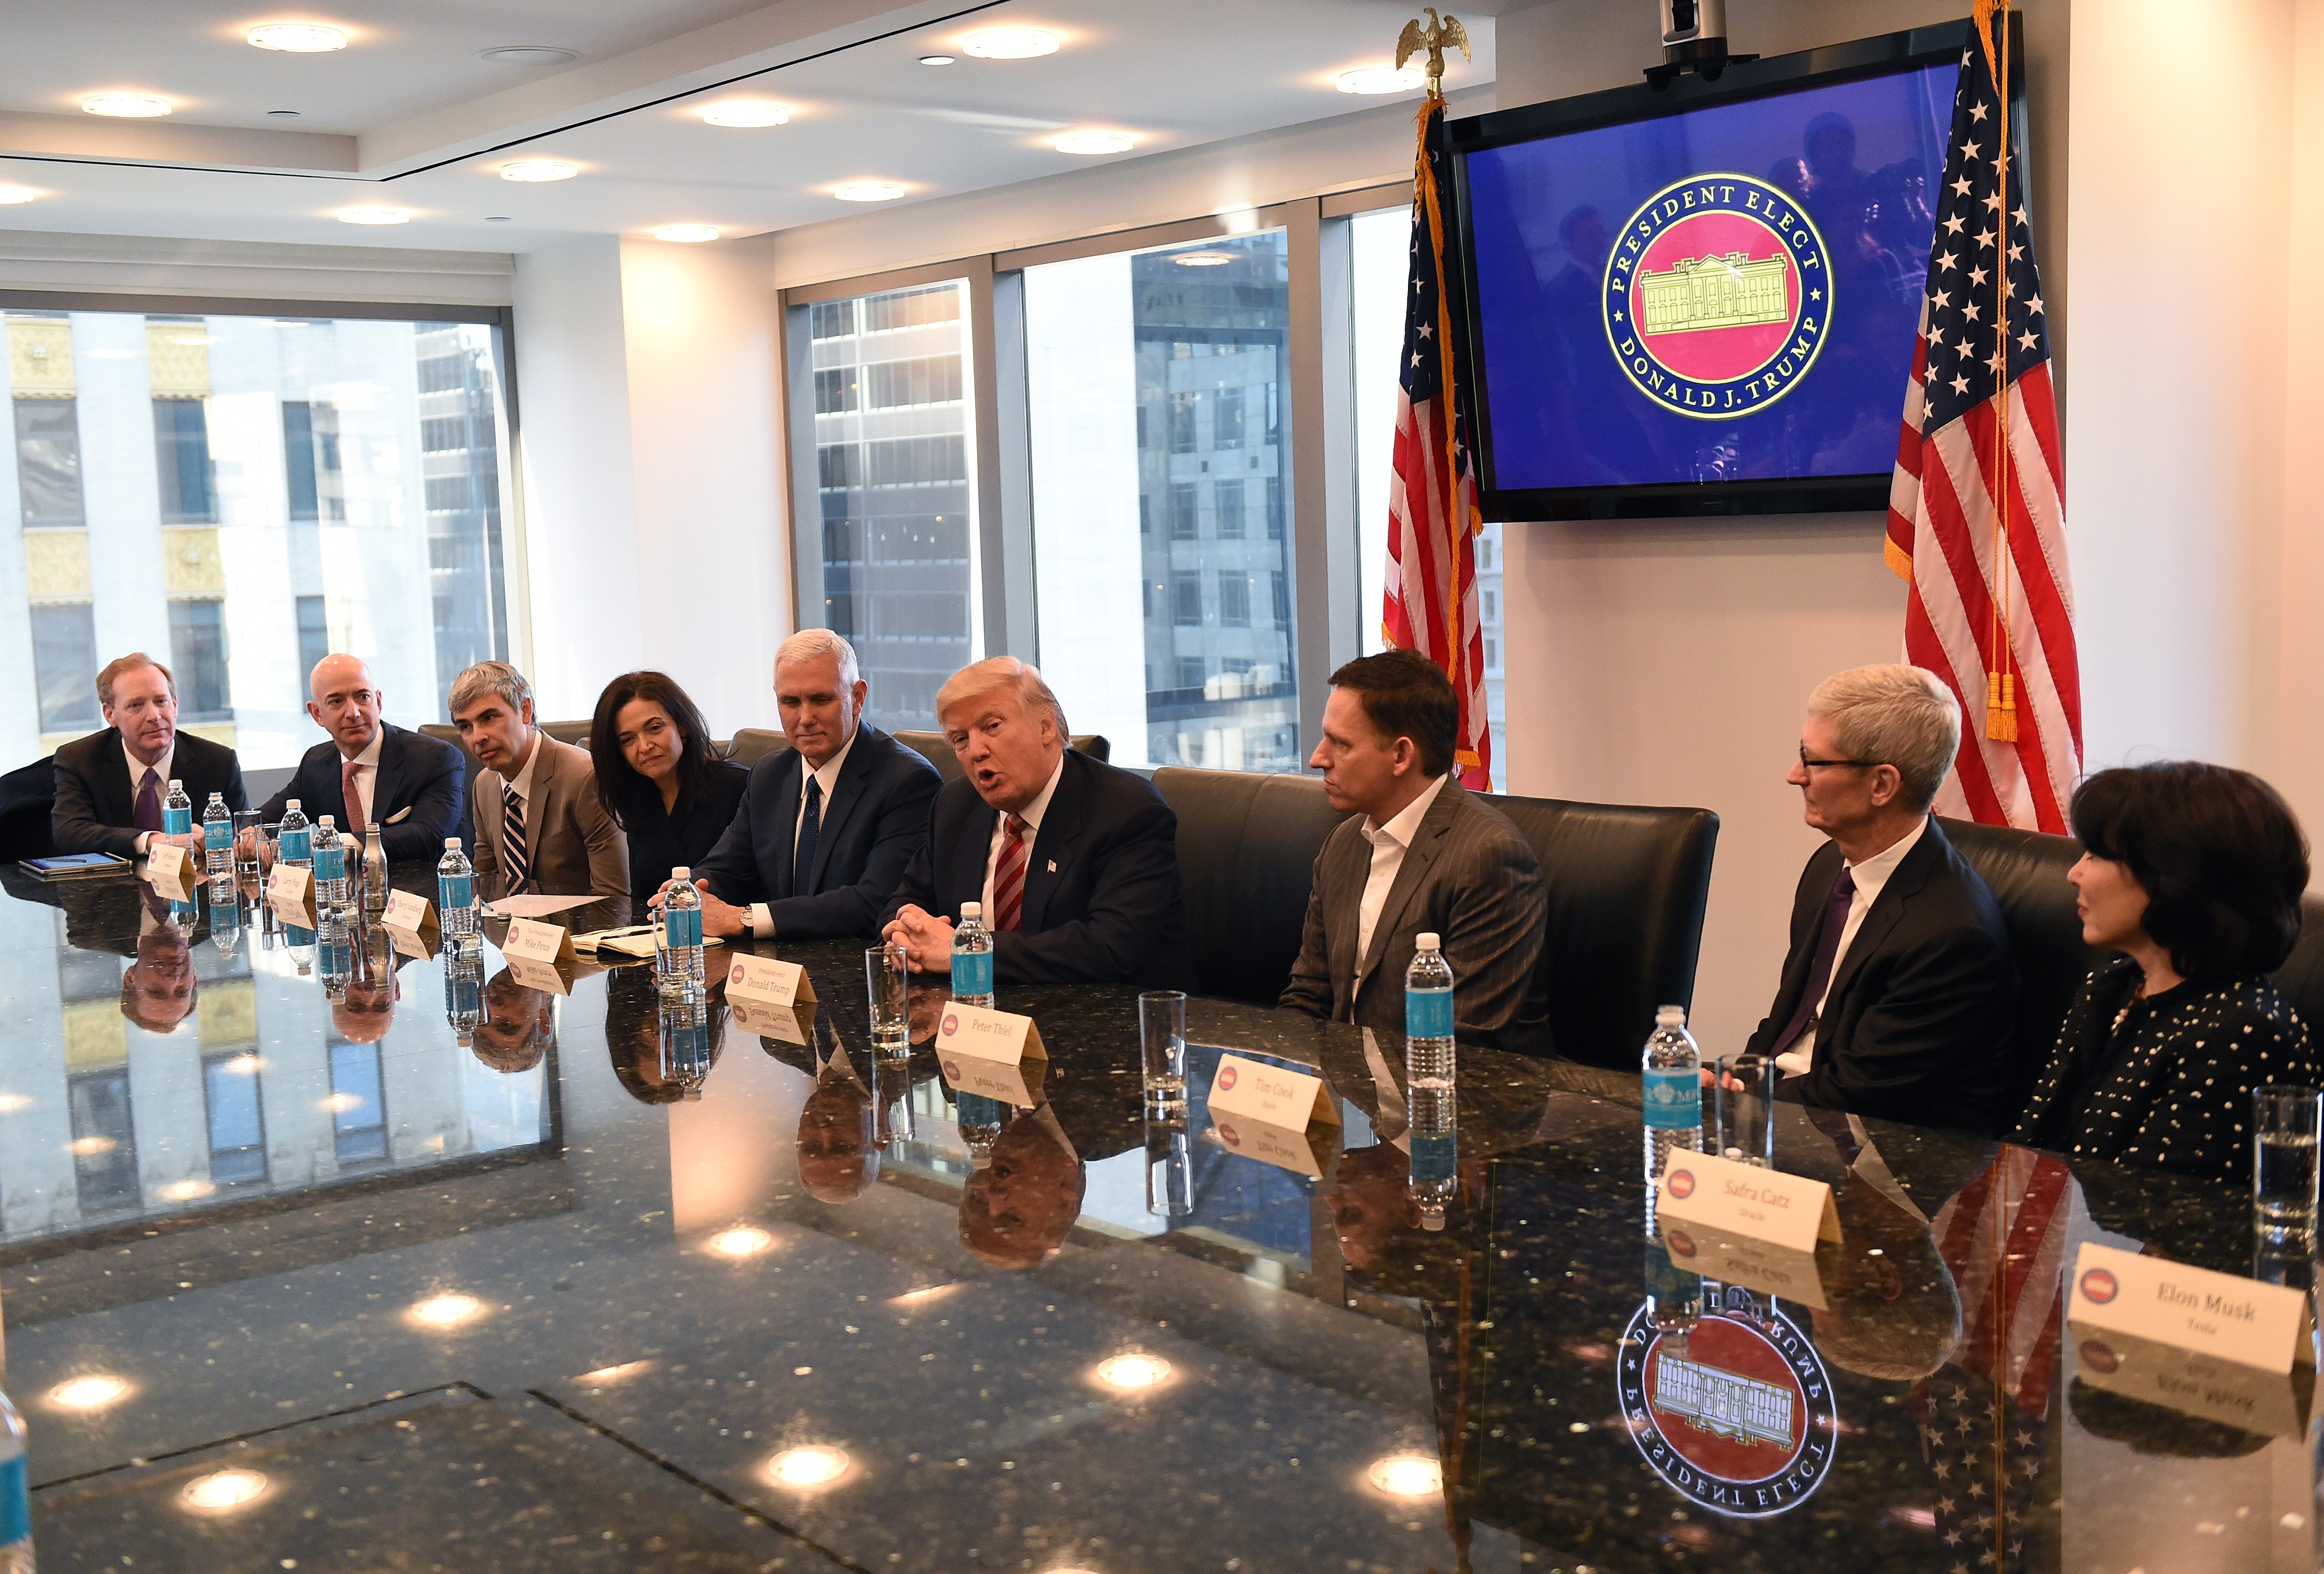 Amazon's chief Jeff Bezos, Larry Page of Alphabet, Facebook COO Sheryl Sandberg, Vice President elect Mike Pence, President-elect Donald Trump, Peter Thiel, co-founder and former CEO of PayPal, Tim Cook of Apple and Safra Catz of Oracle attend a meeting a